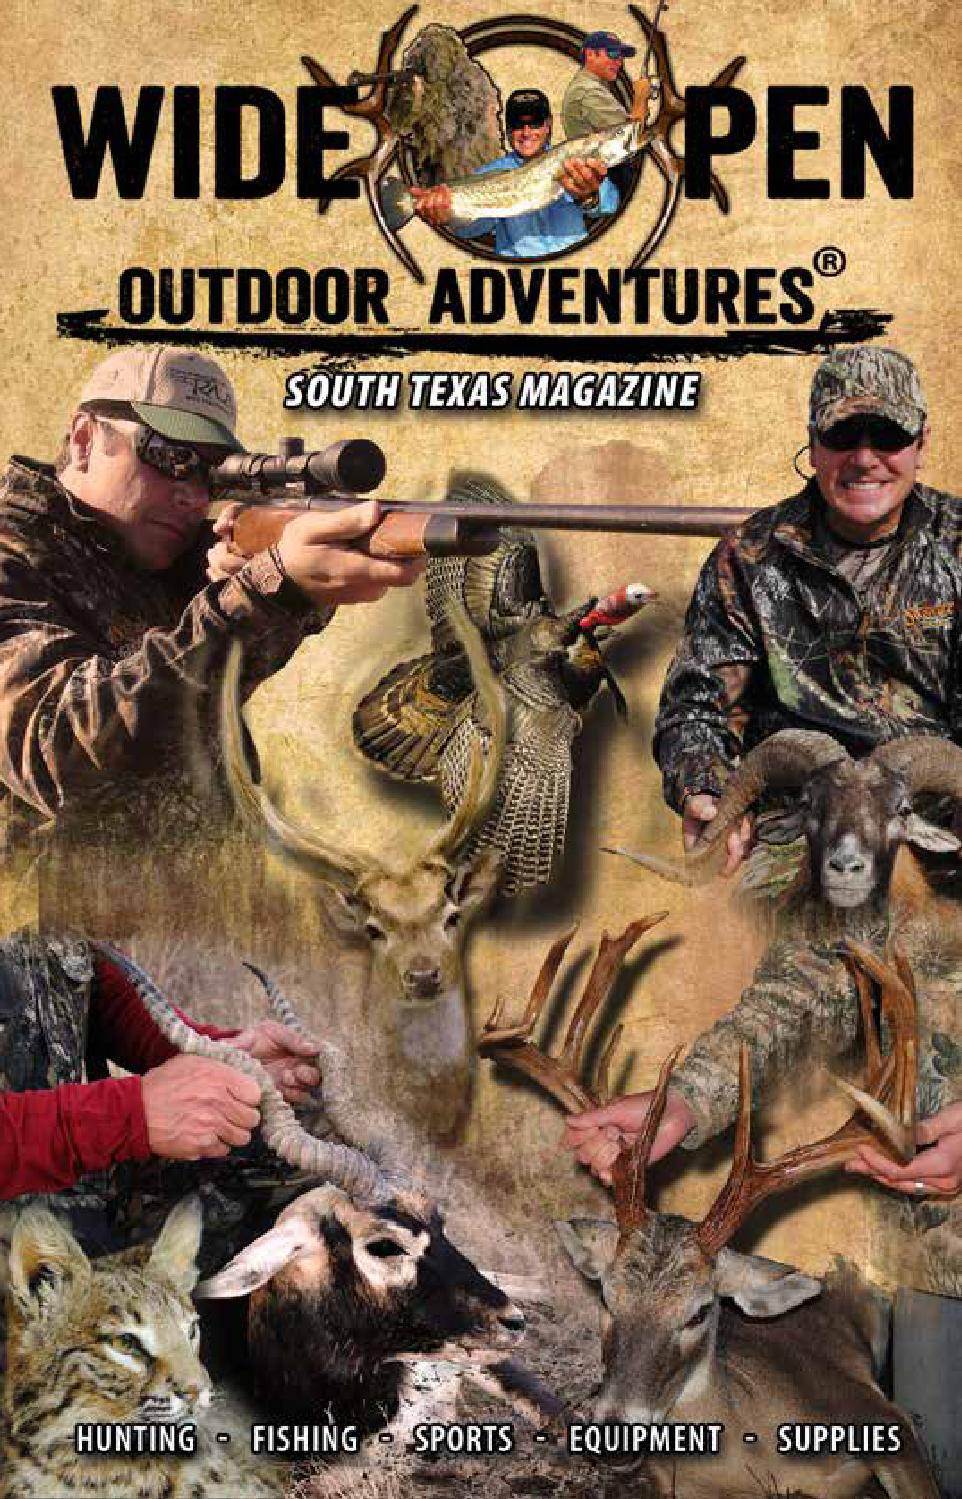 Wide Open Outdoor Adventures by Wide Open Outdoors - issuu